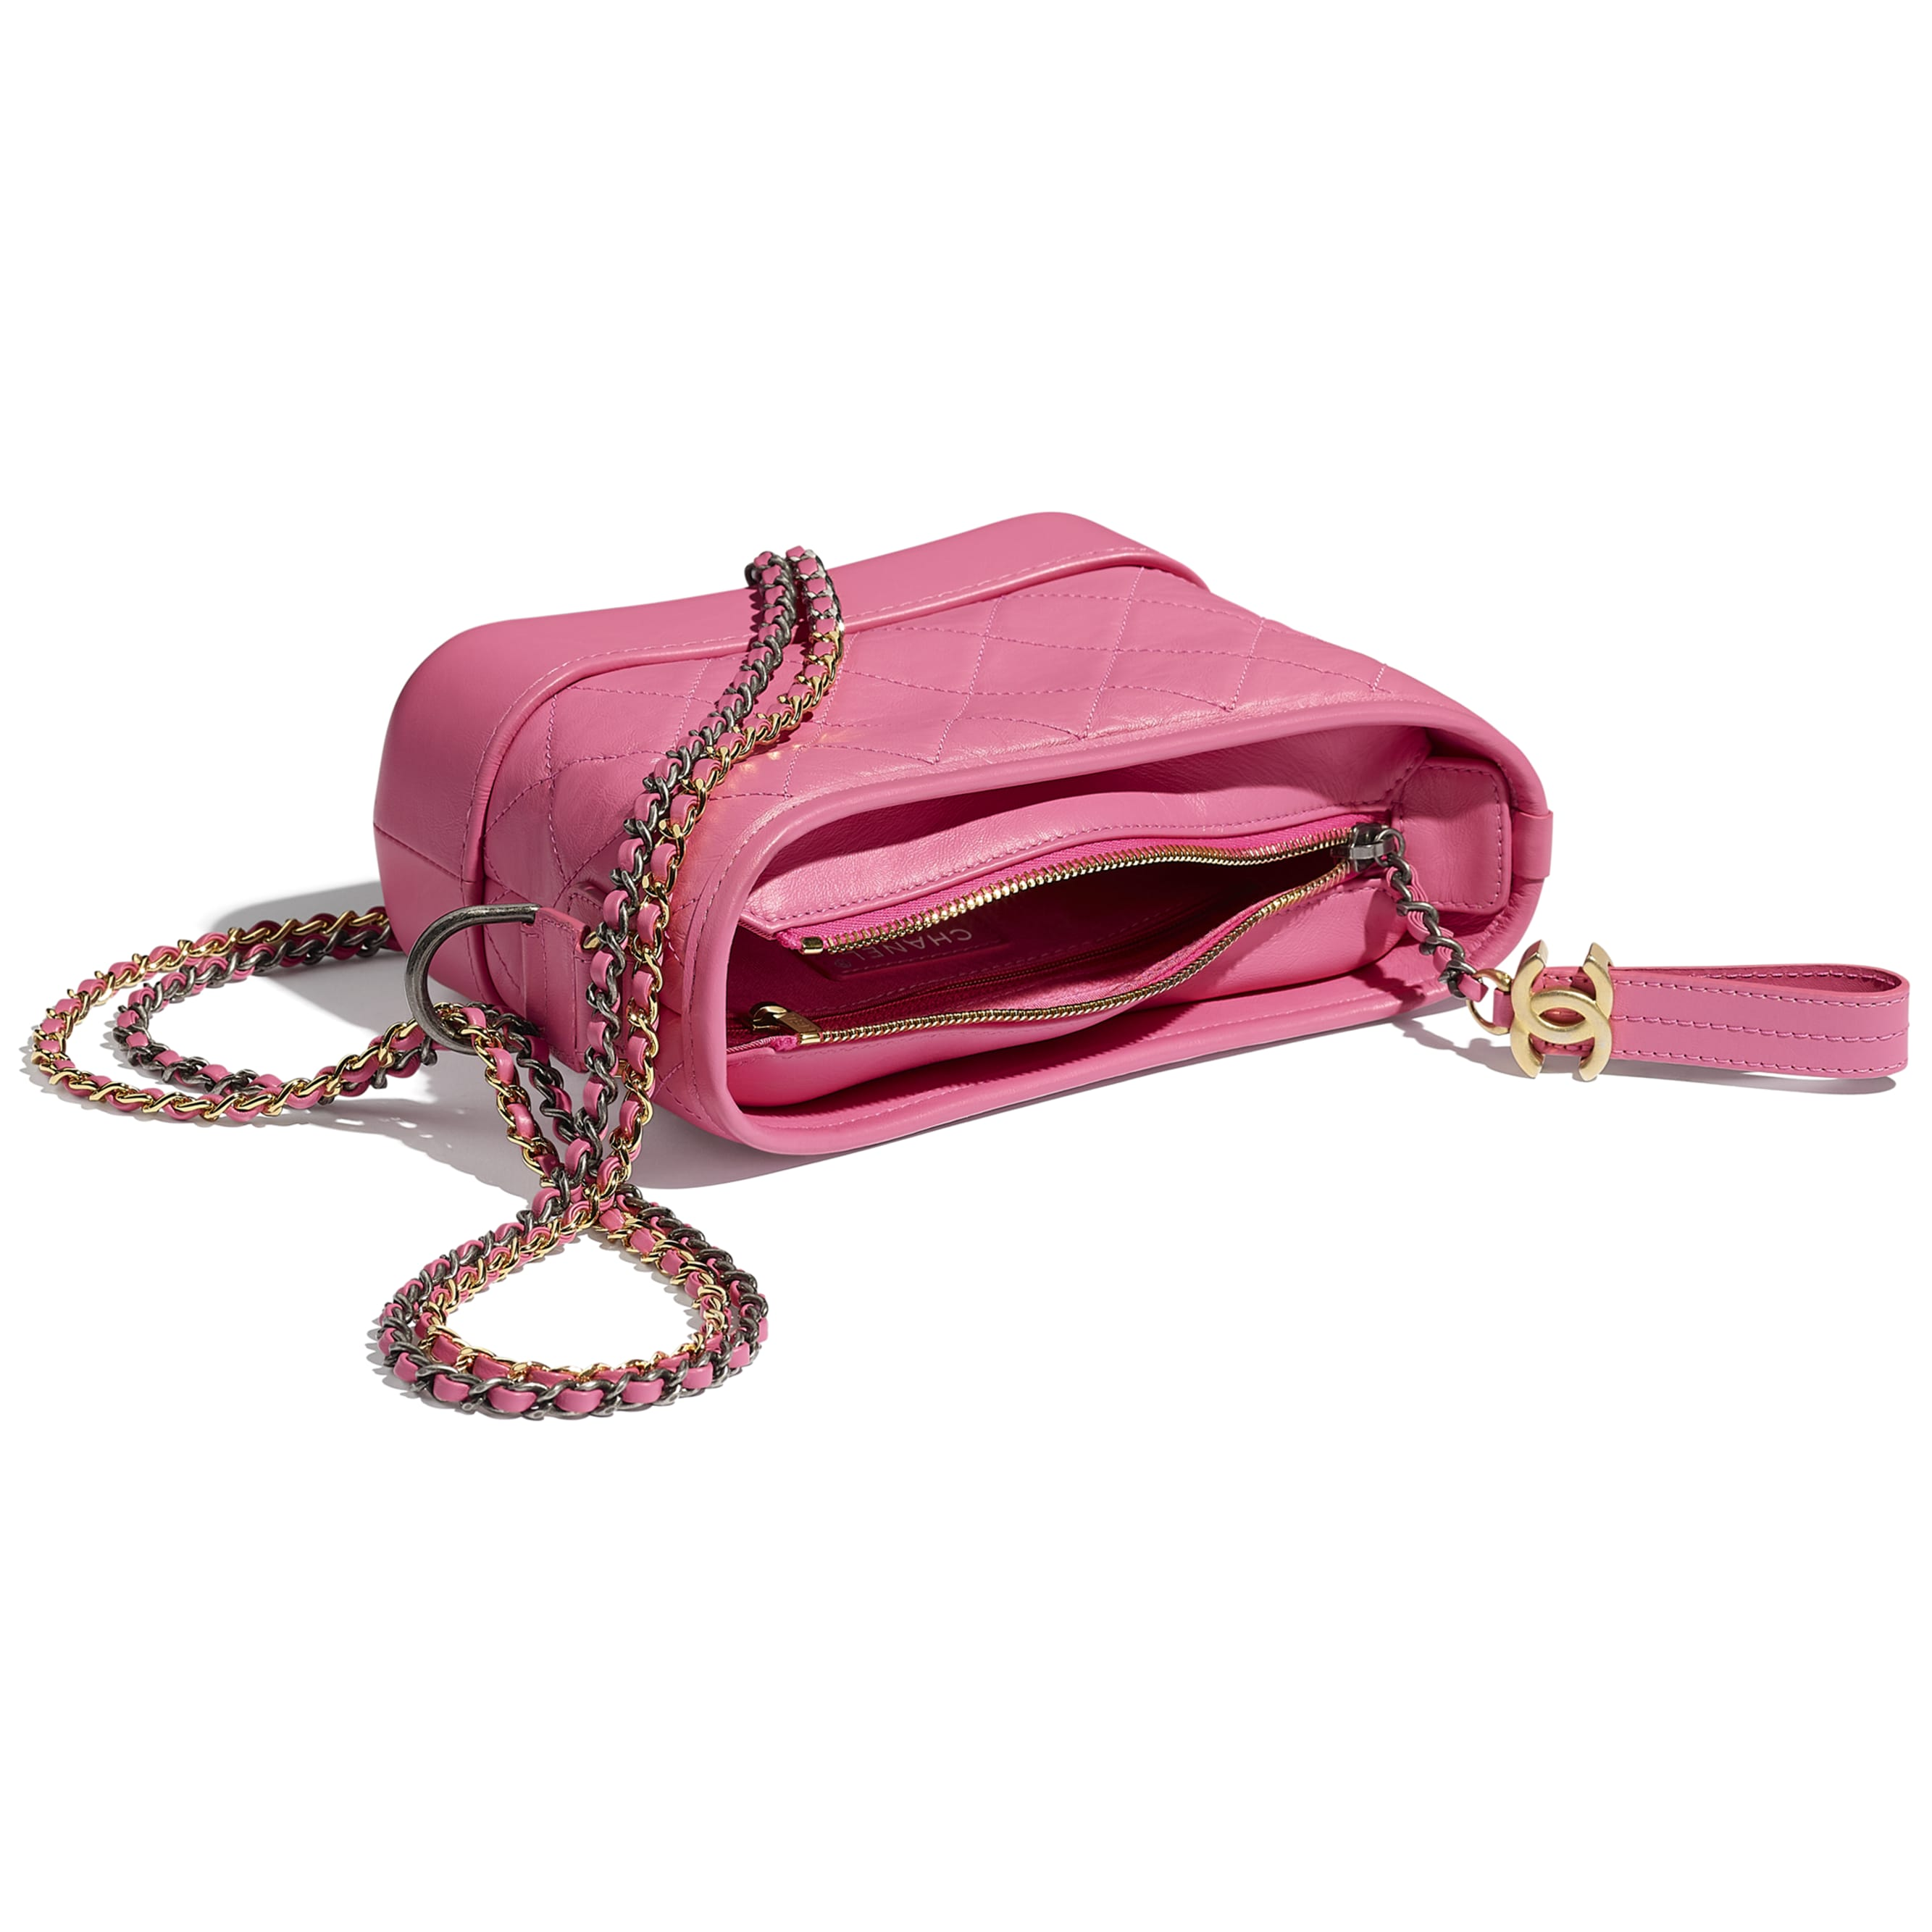 CHANEL'S GABRIELLE Small Hobo Bag - Pink - Aged Calfskin, Smooth Calfskin, Gold-Tone, Silver-Tone & Ruthenium-Finish Metal - CHANEL - Other view - see standard sized version